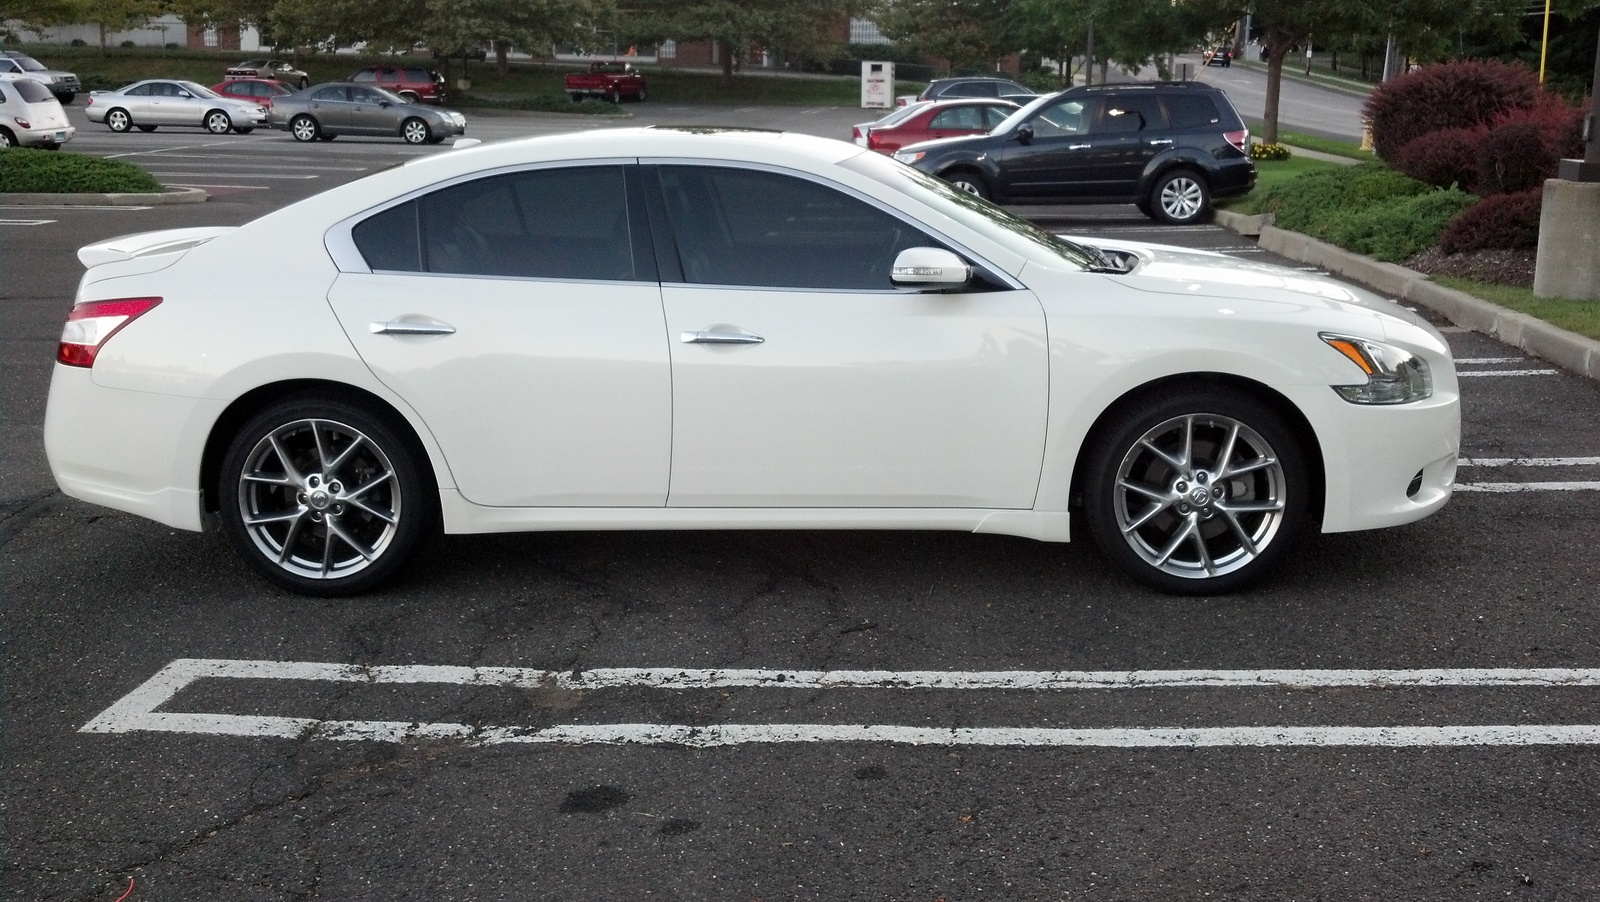 2010 Nissan Altima Accessories likewise Watch also Nissan Altima Repair Manual 1993 2011 together with Watch besides 1992 Nissan Sentra. on 1993 nissan altima